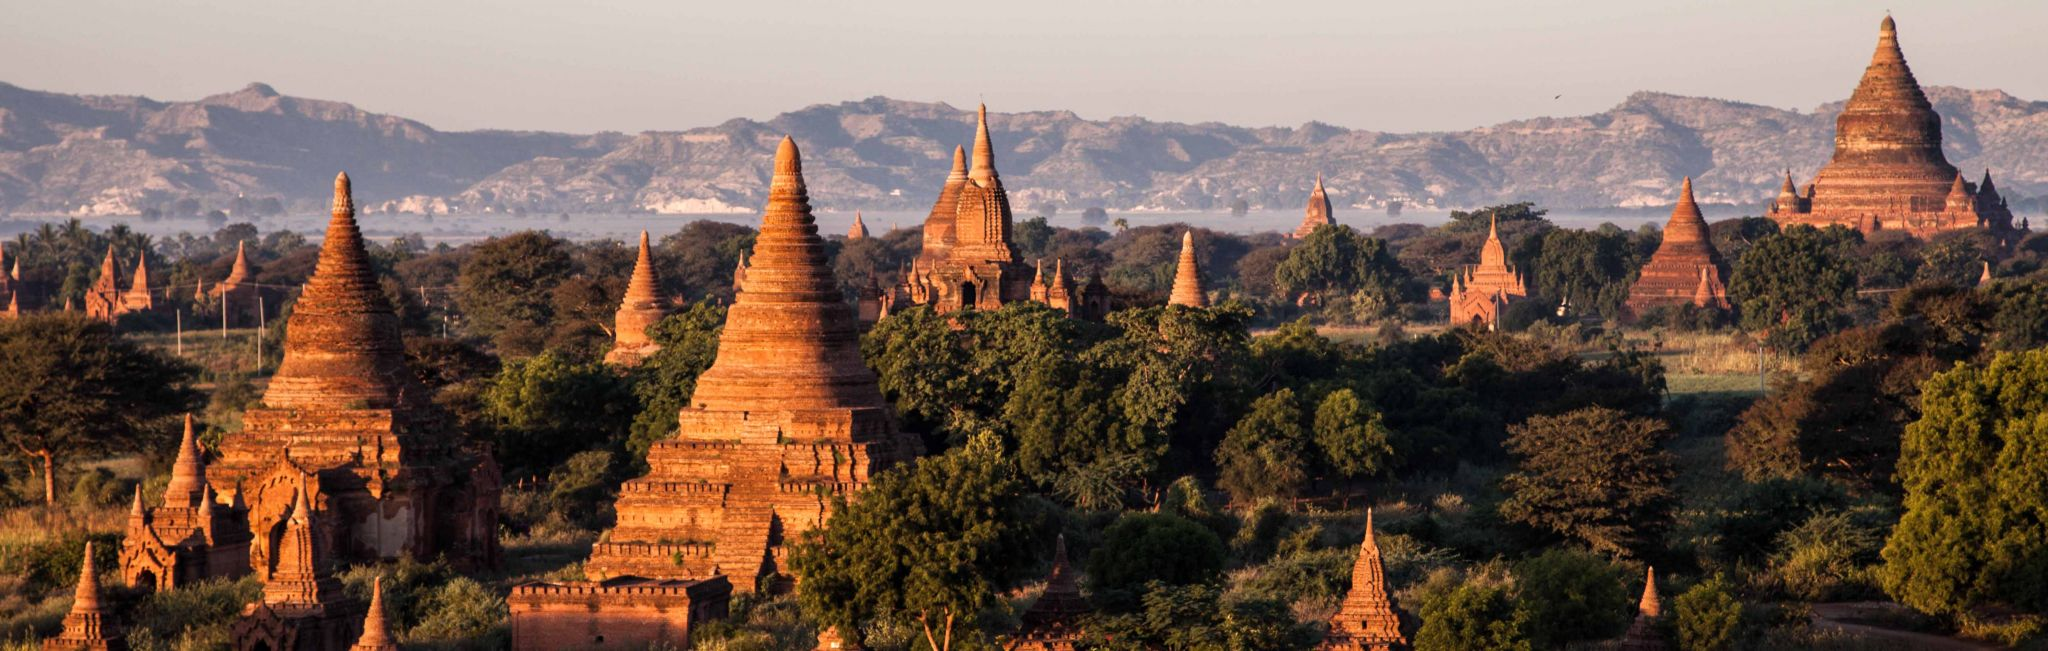 A sunrise over a temple complex in Myanmar.